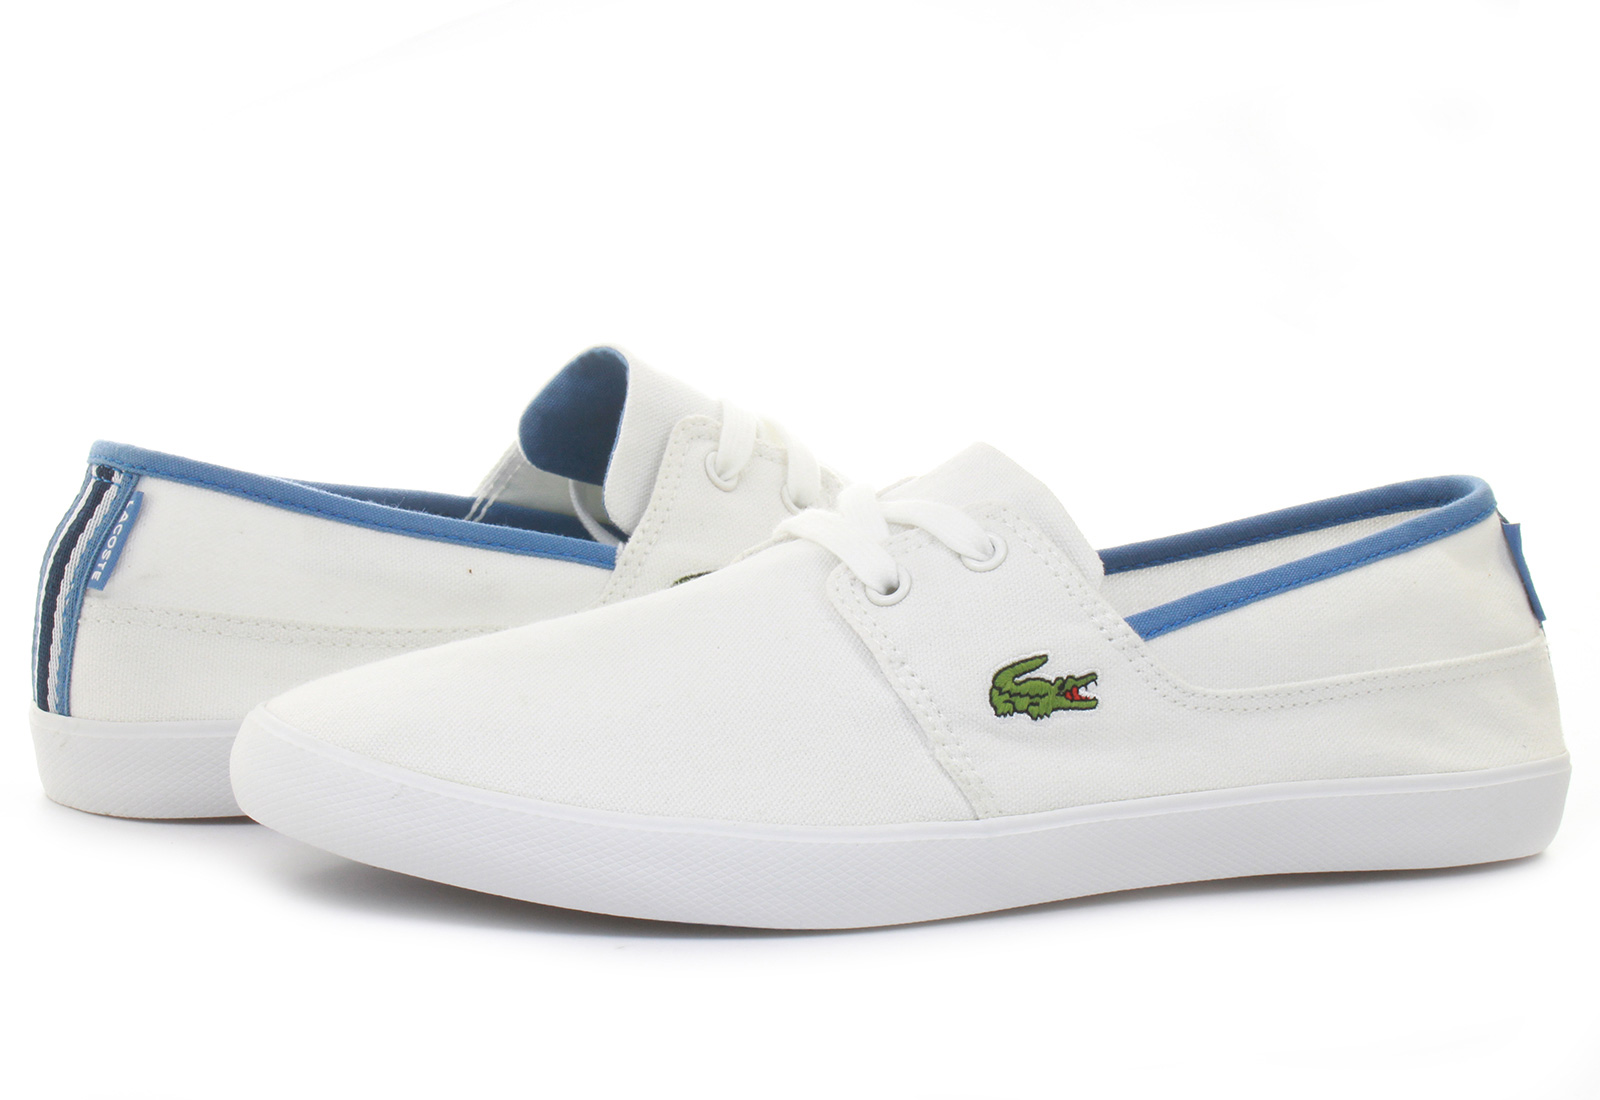 lacoste shoes marice lace 142spm3003 21g online shop for sneakers shoes and boots. Black Bedroom Furniture Sets. Home Design Ideas